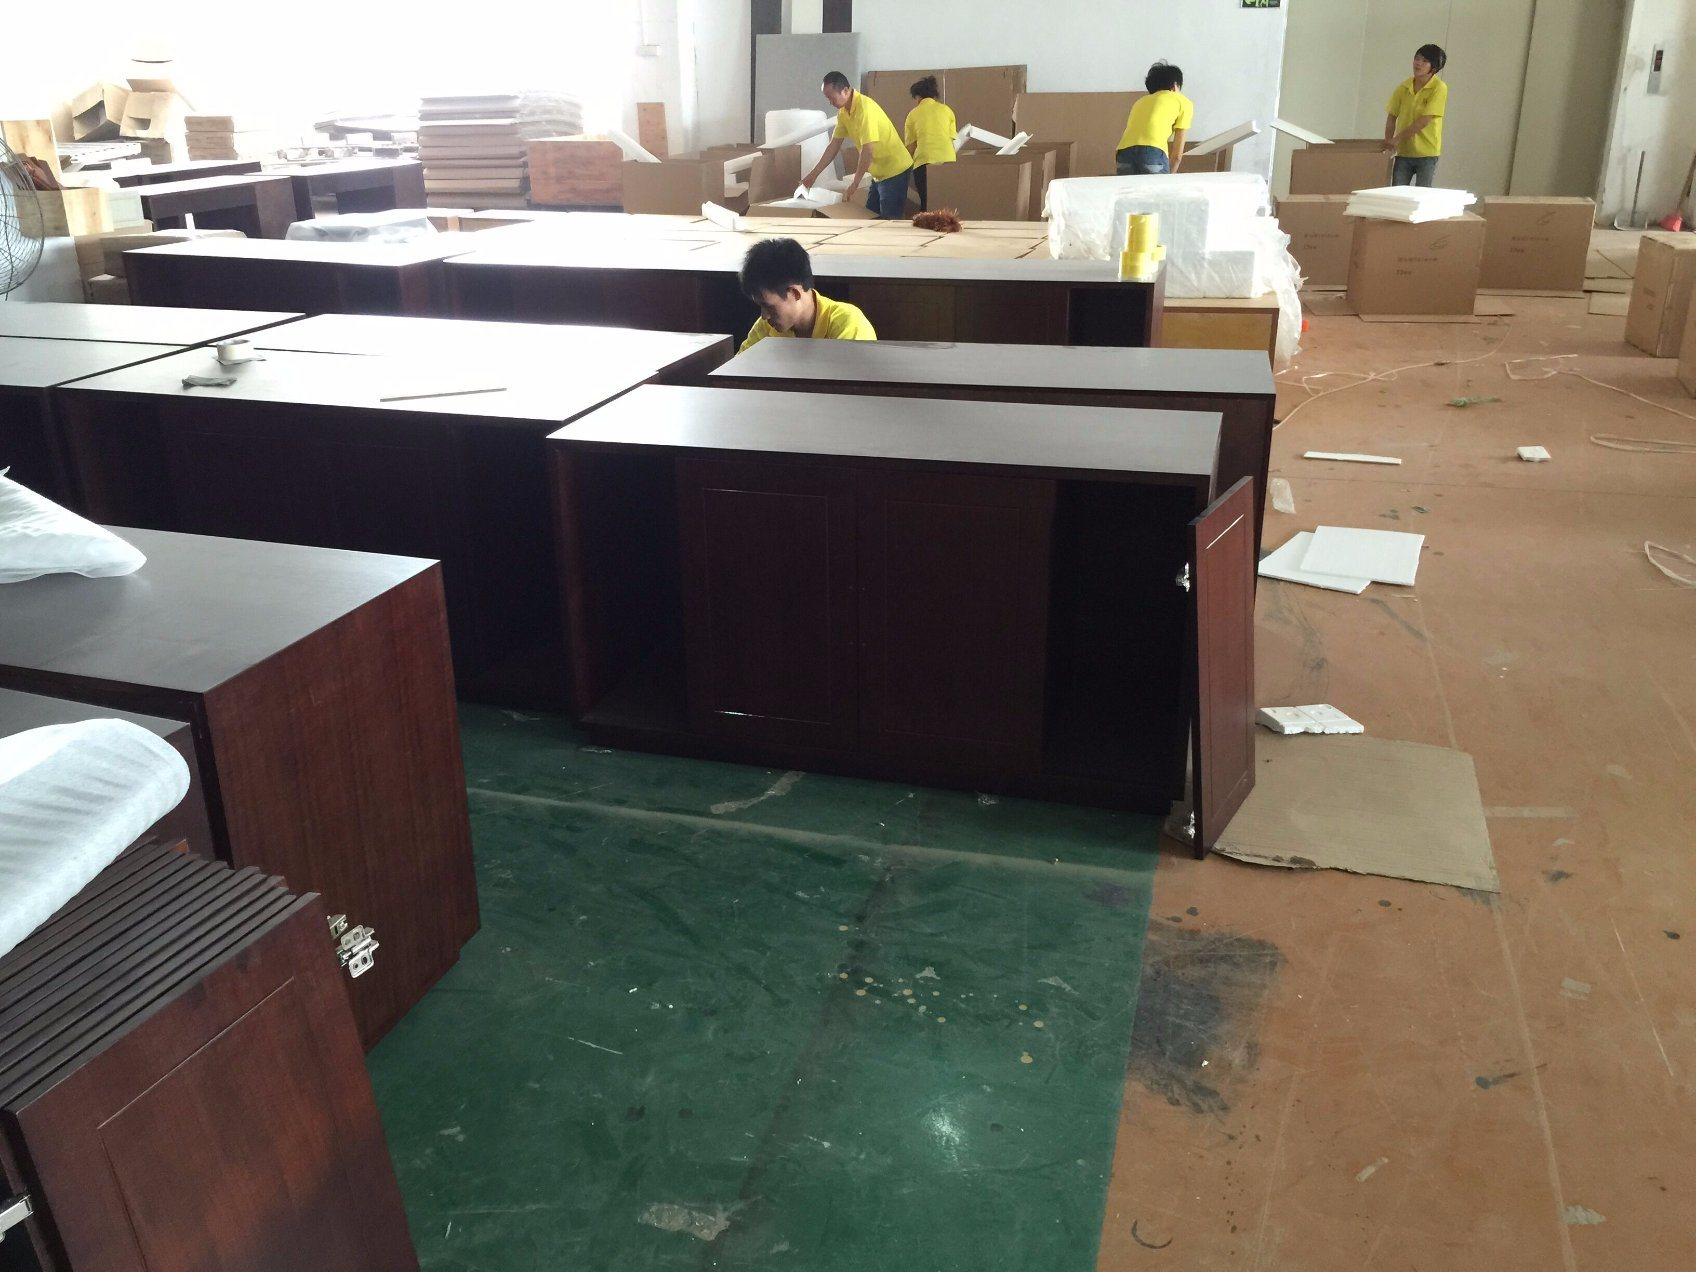 Hotel Furniture/Chinese Furniture/Standard Hotel King Size Bedroom Furniture Suite/Hospitality Guest Room Furniture (GLB-0109823) pictures & photos